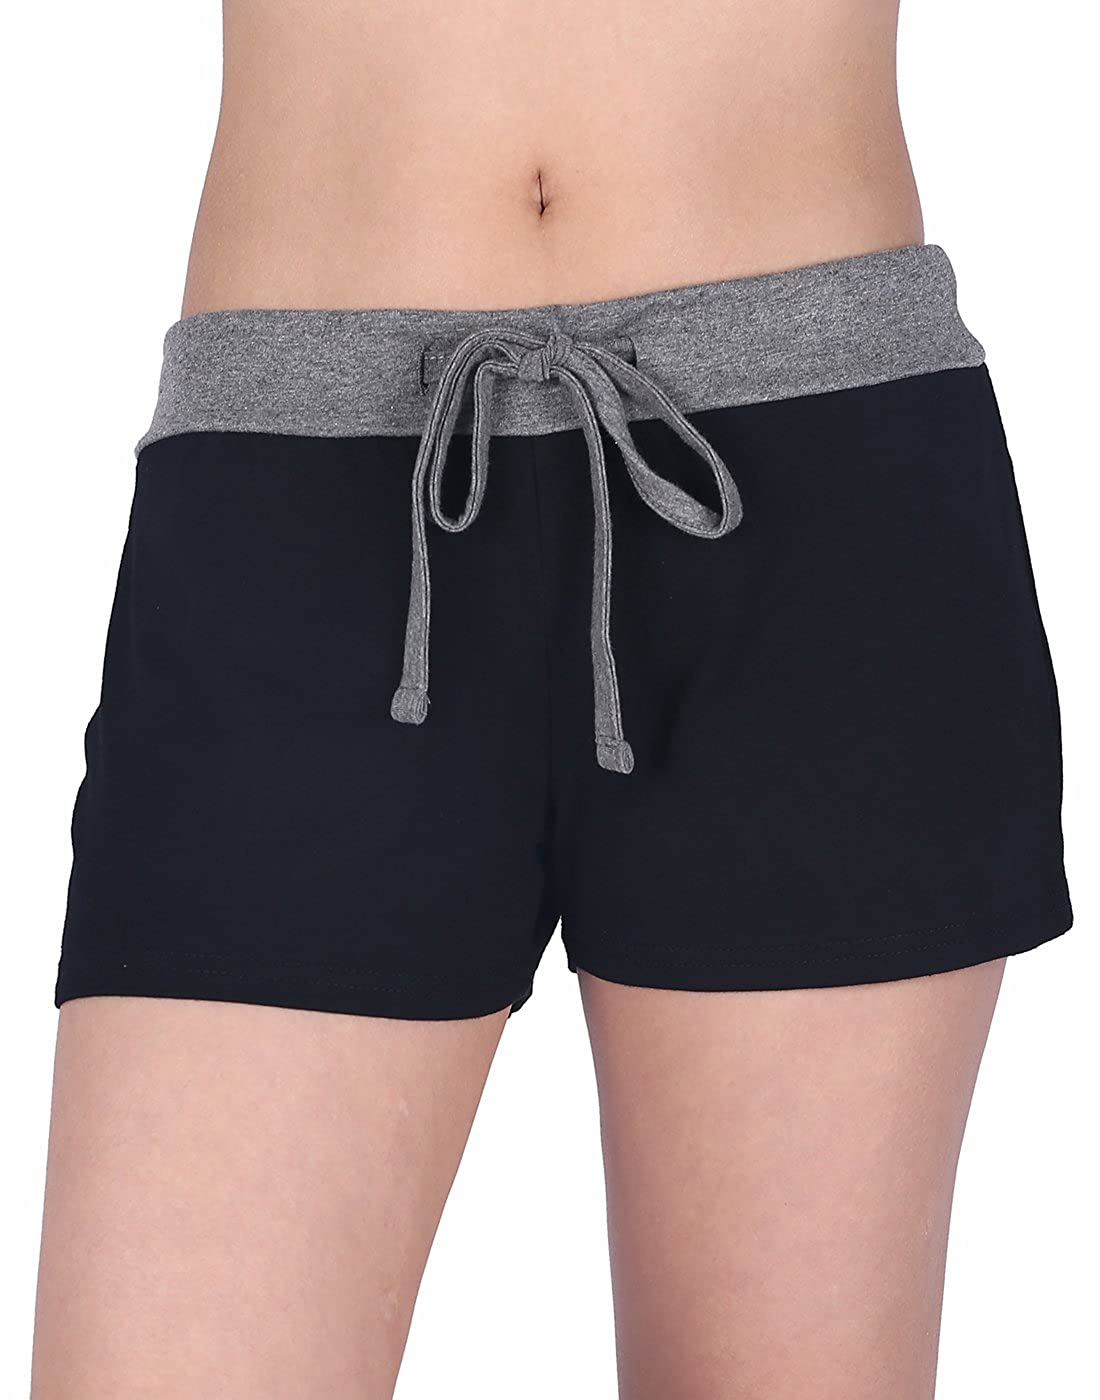 99f60abb13506 Perfect lounge shorts for relaxing, sleeping, yoga, traveling and light  workouts | Drawstring waistband ensures comfortable fit